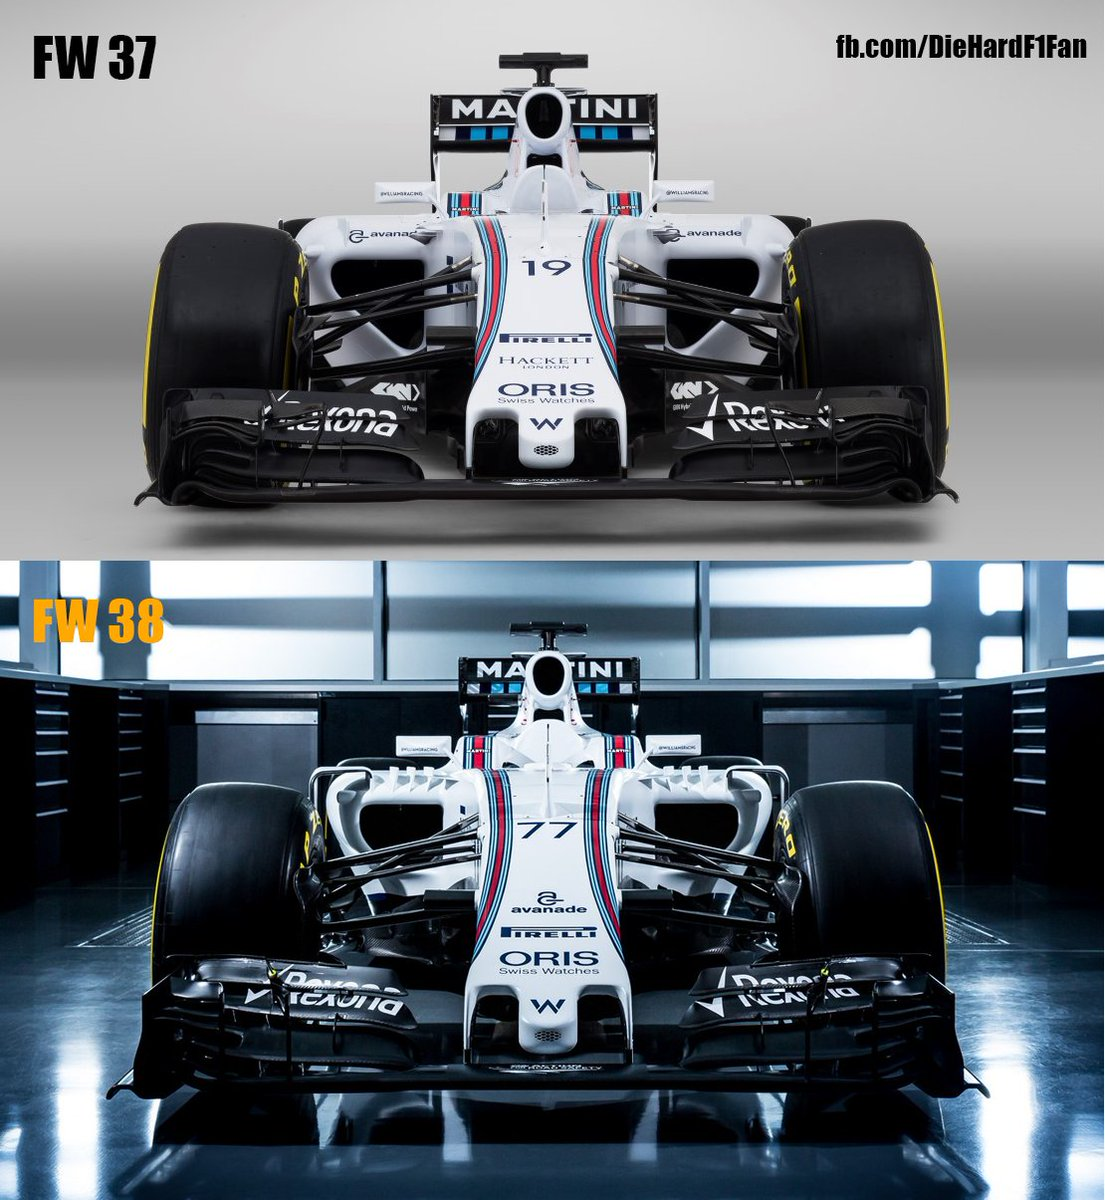 #F1 Compared : @WilliamsRacing FW37 v/s FW 38 https://t.co/DYXCBPqOCQ